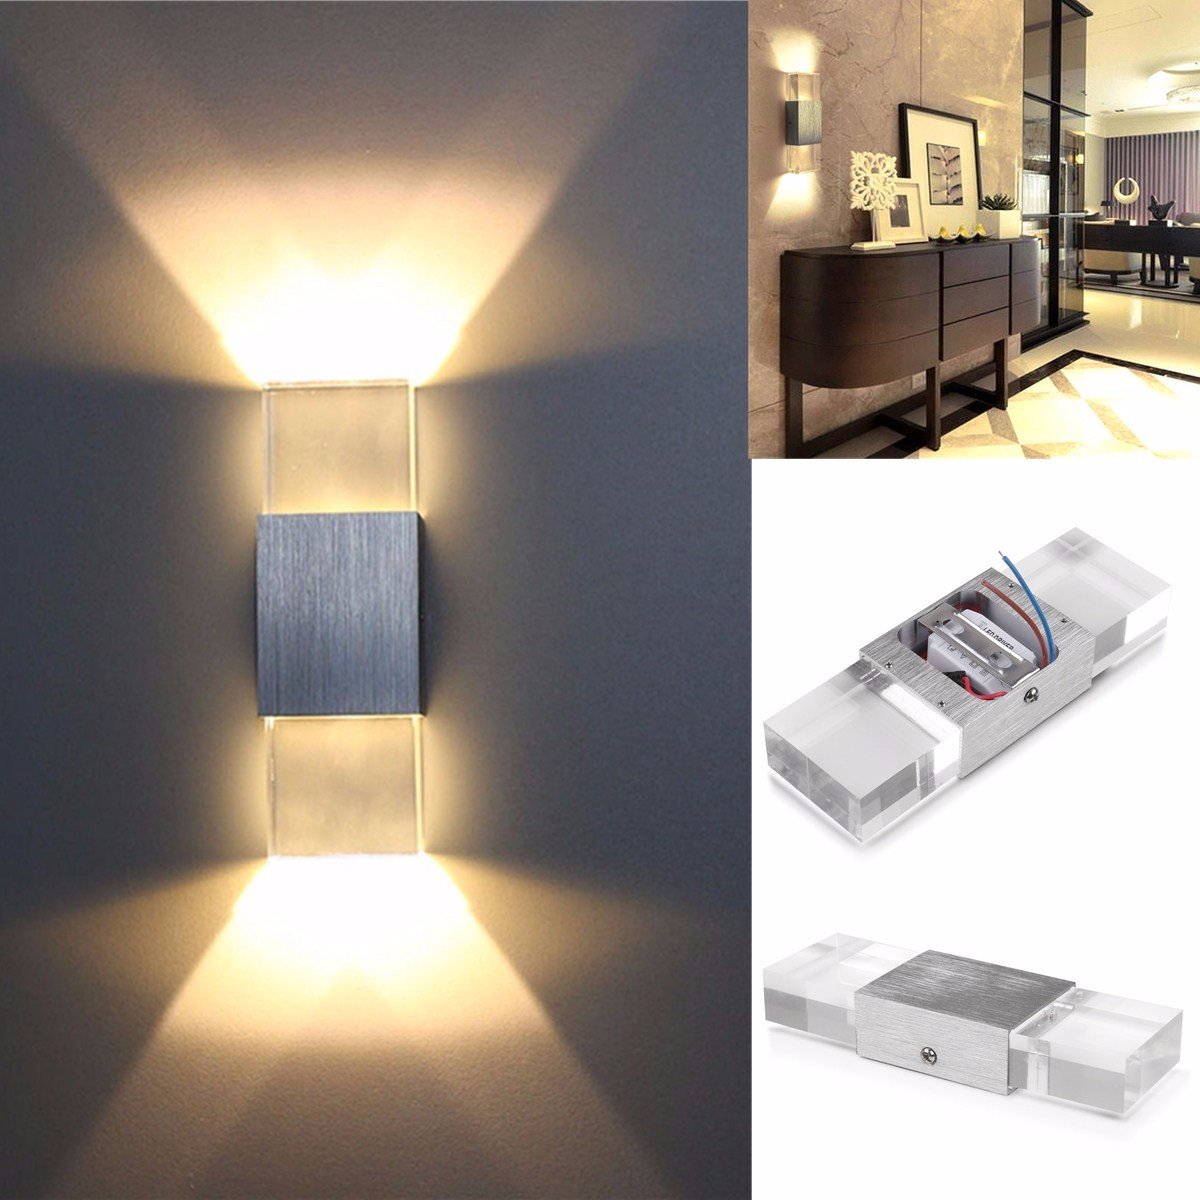 2w Modern Led Wall Light Up Down Indoor Sconce Bedroom Lamp Fixture Warm White Sale